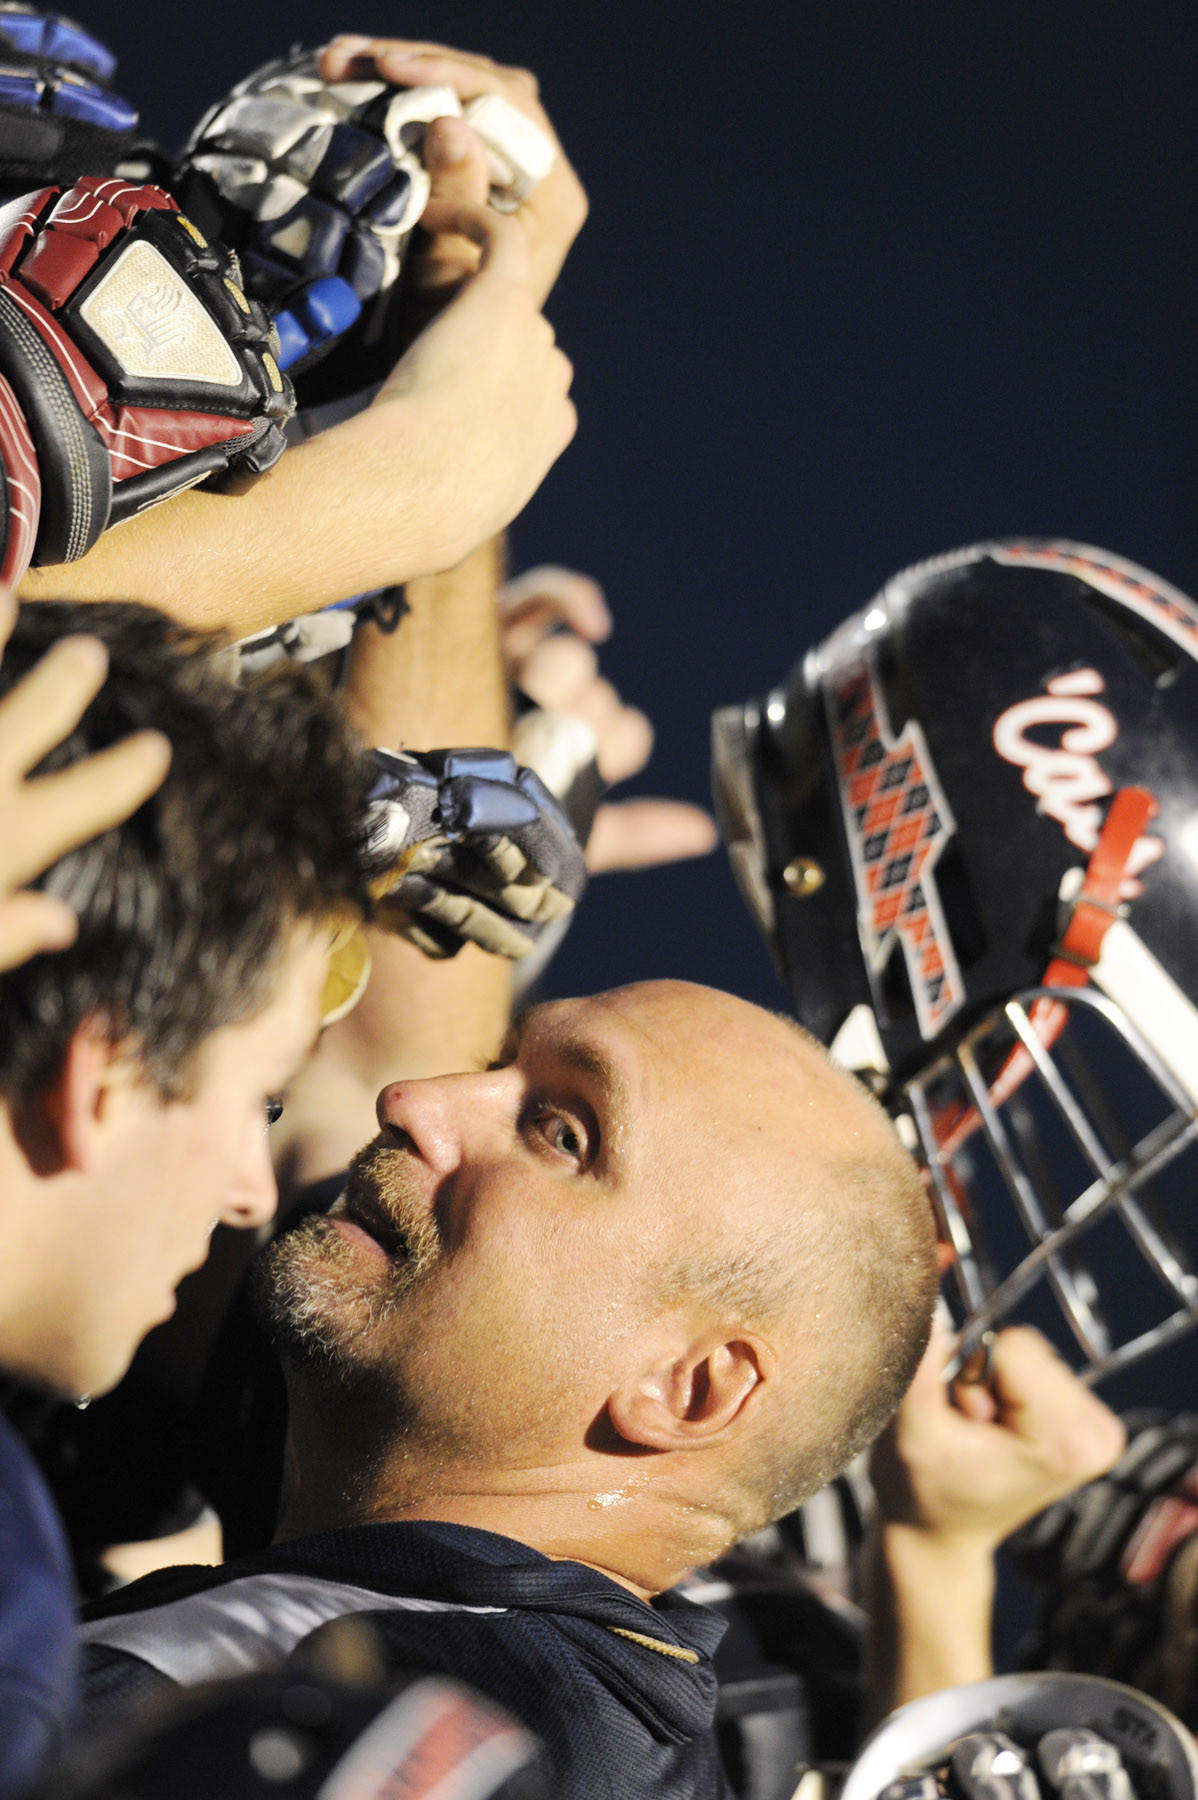 Bel Air head coach Scoop Kelly celebrates with his team after defeating Howard in the boys lacrosse regional championship game at Howard High School in 2012. The win was Kelly's 100th in his high school coaching career.